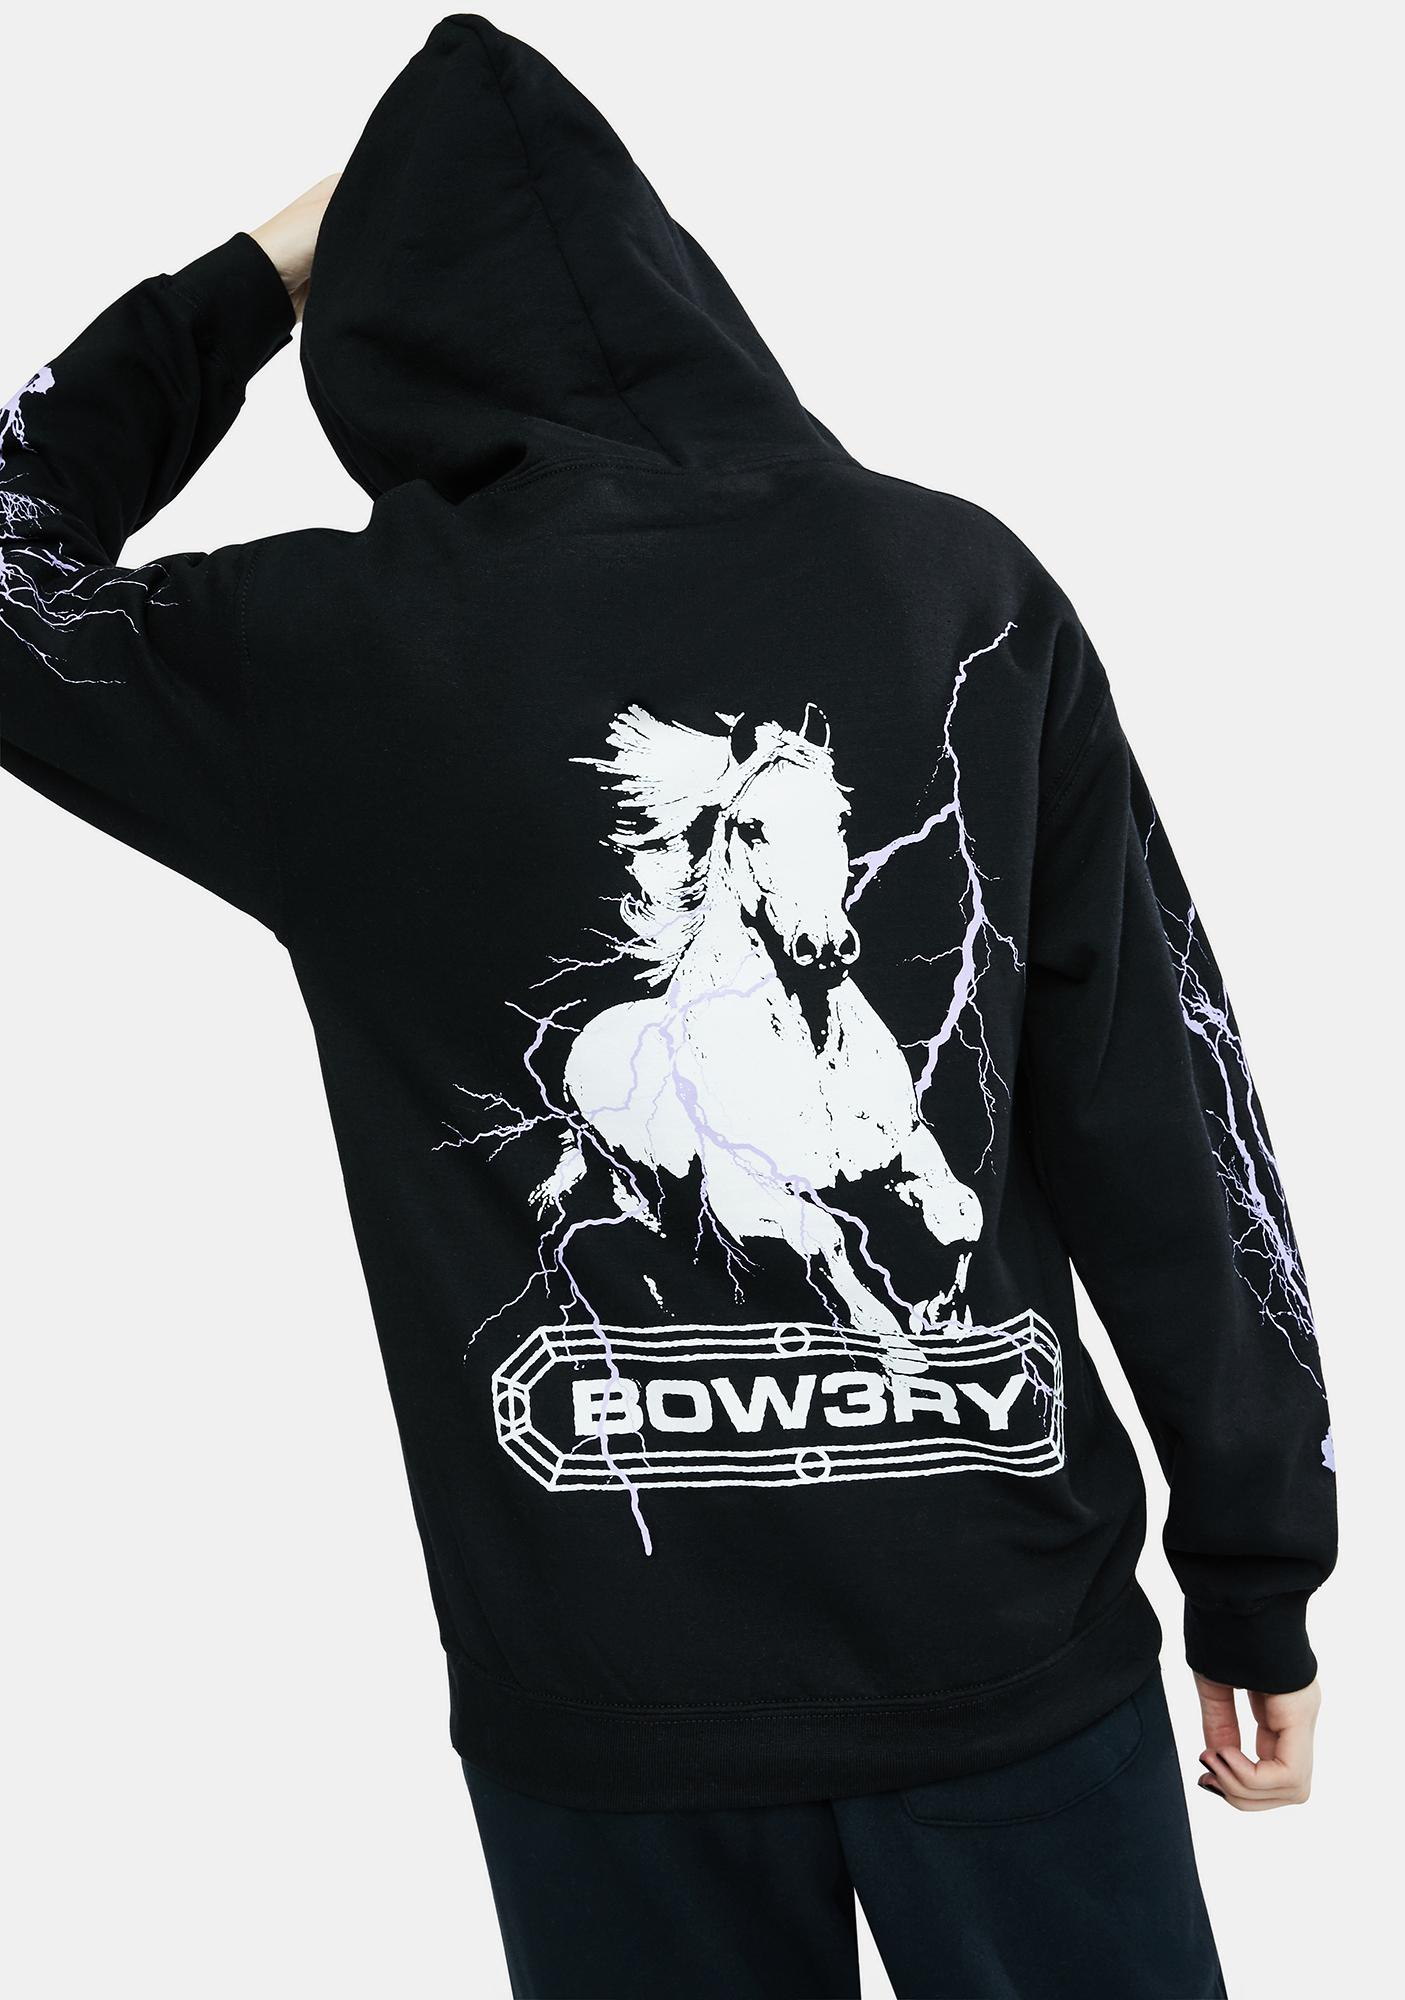 BOW3RY Pale Horse Graphic Hoodie